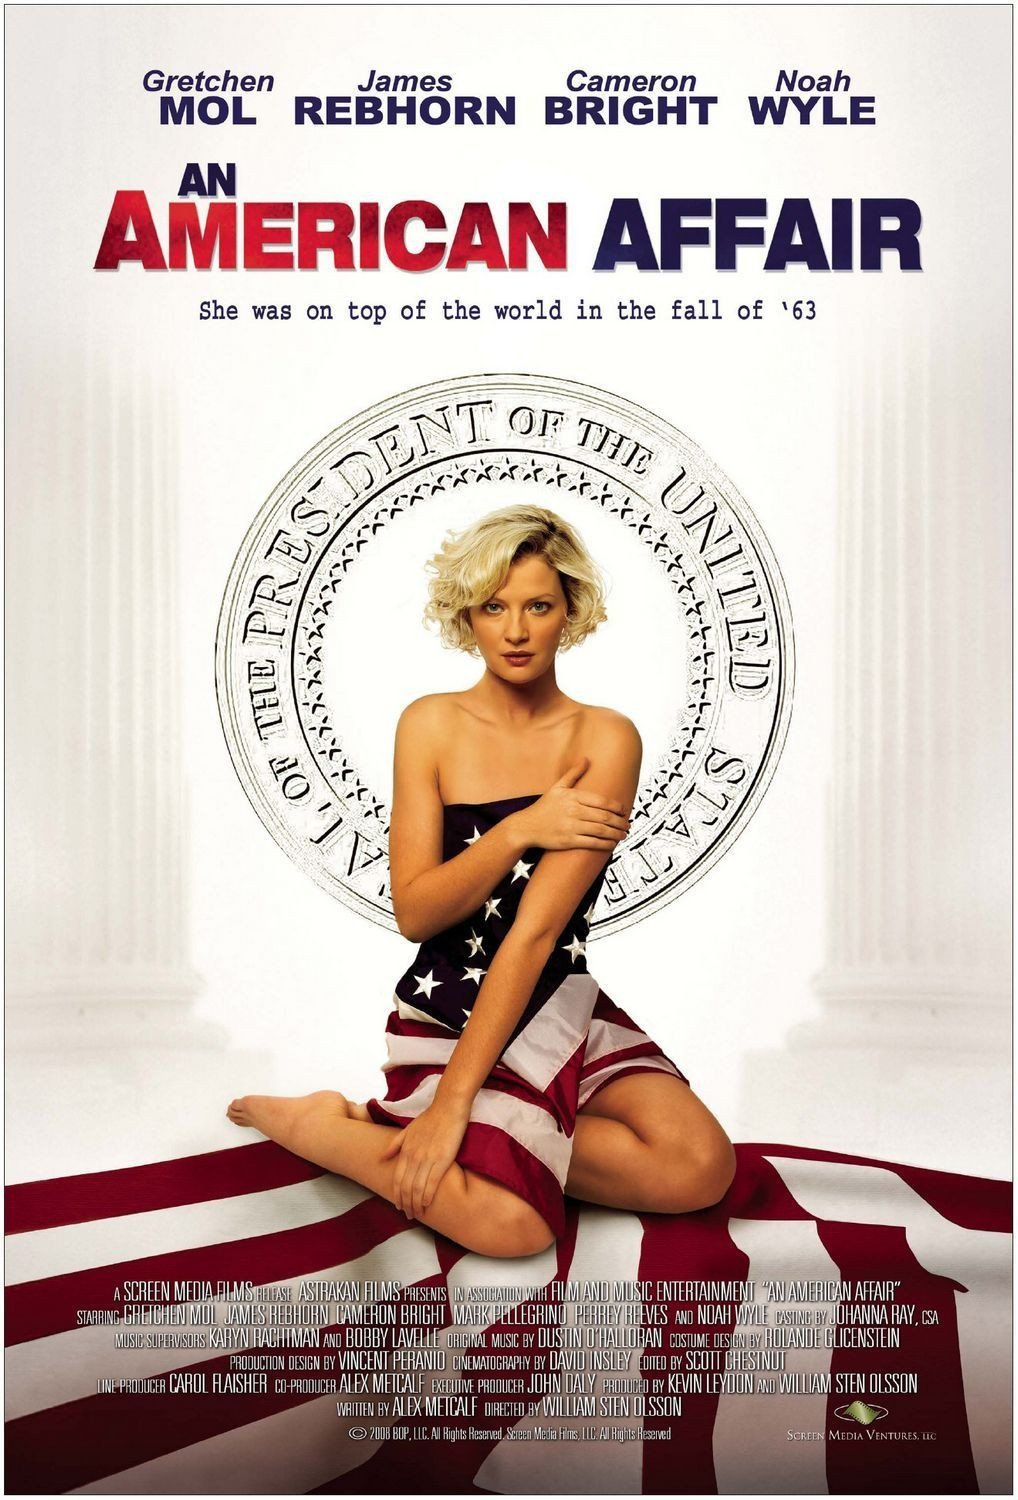 affiche du film An American Affair